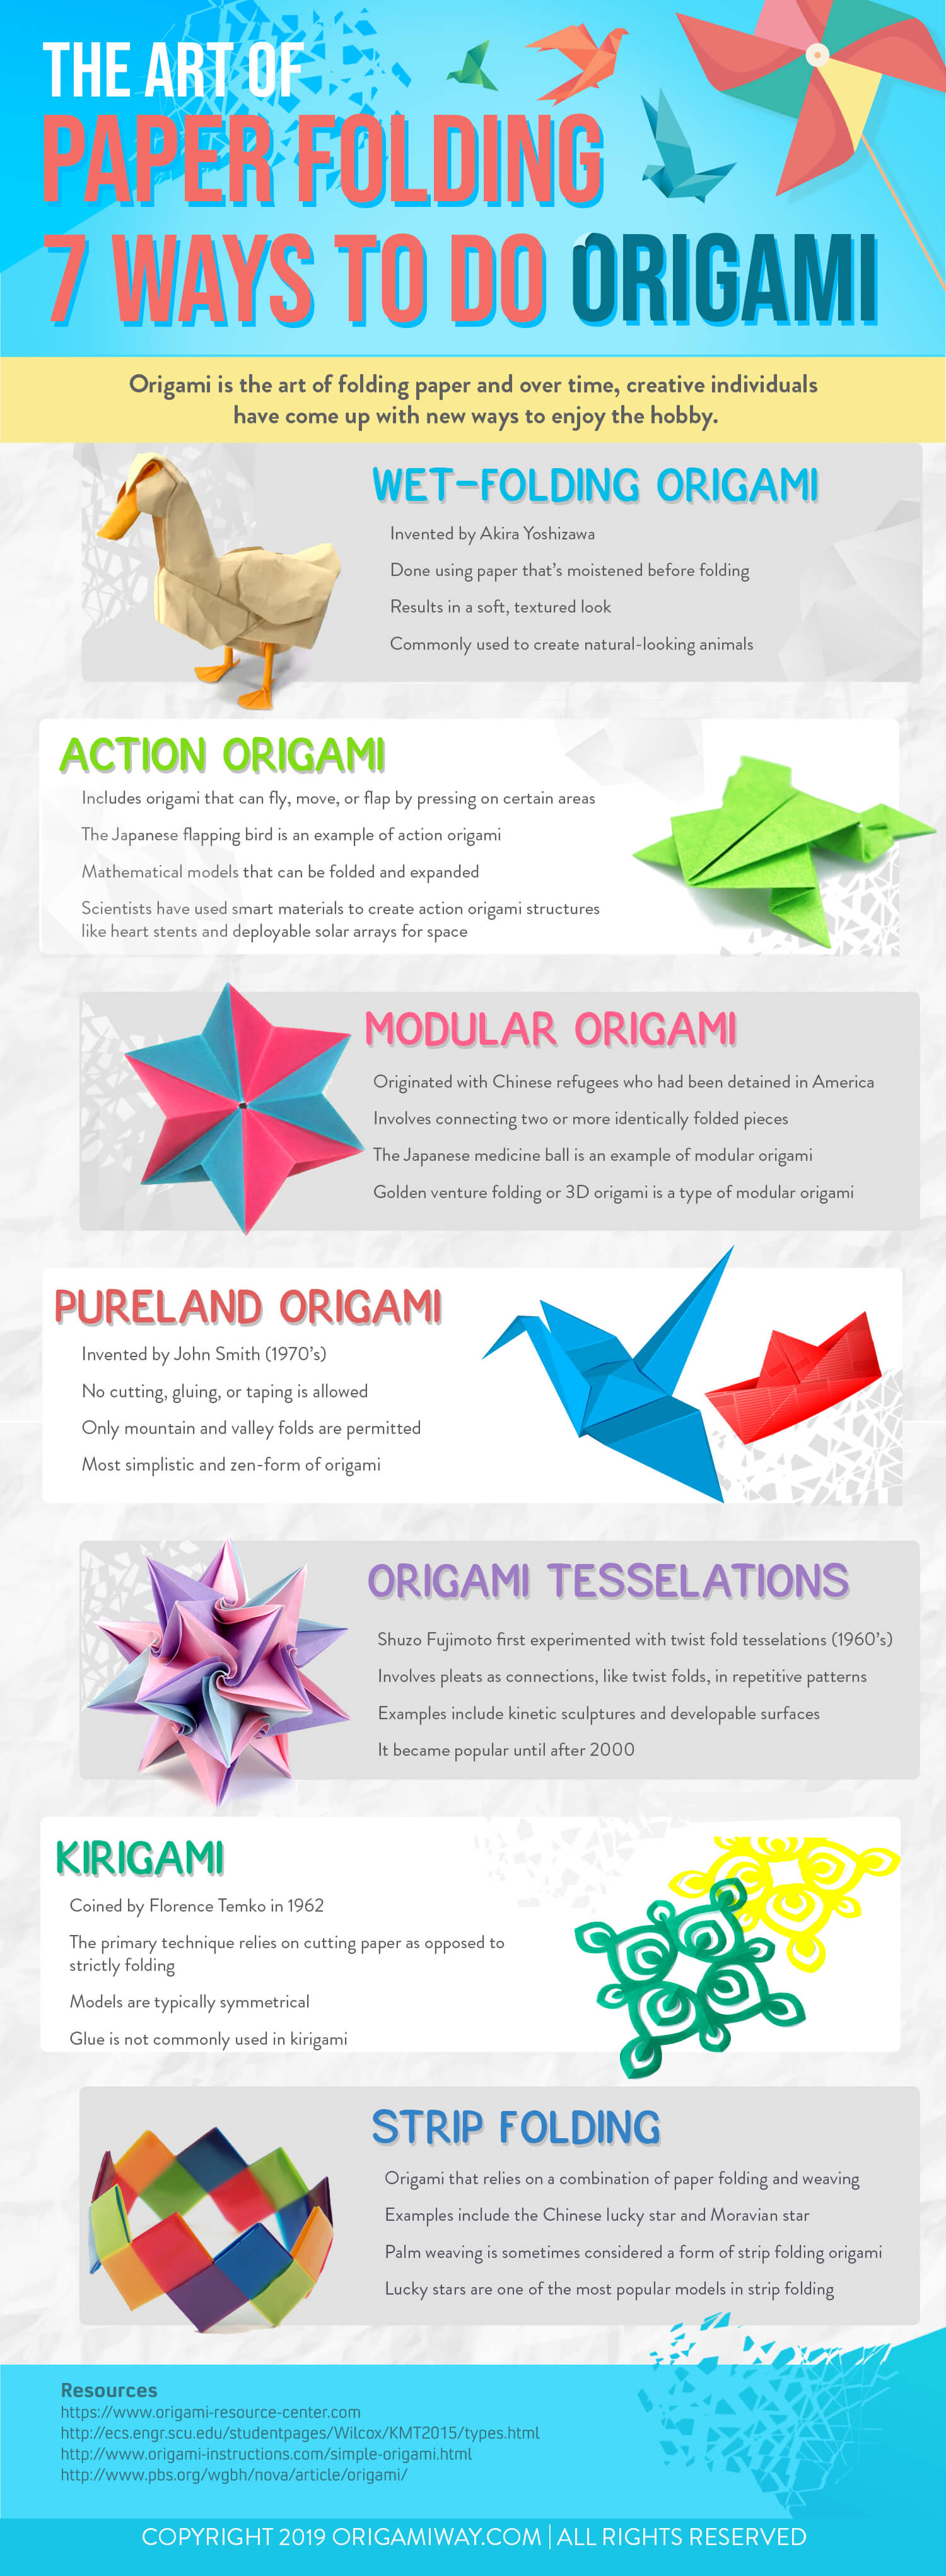 The Art of Paper Folding: 7 Ways to Do Origami Infographic